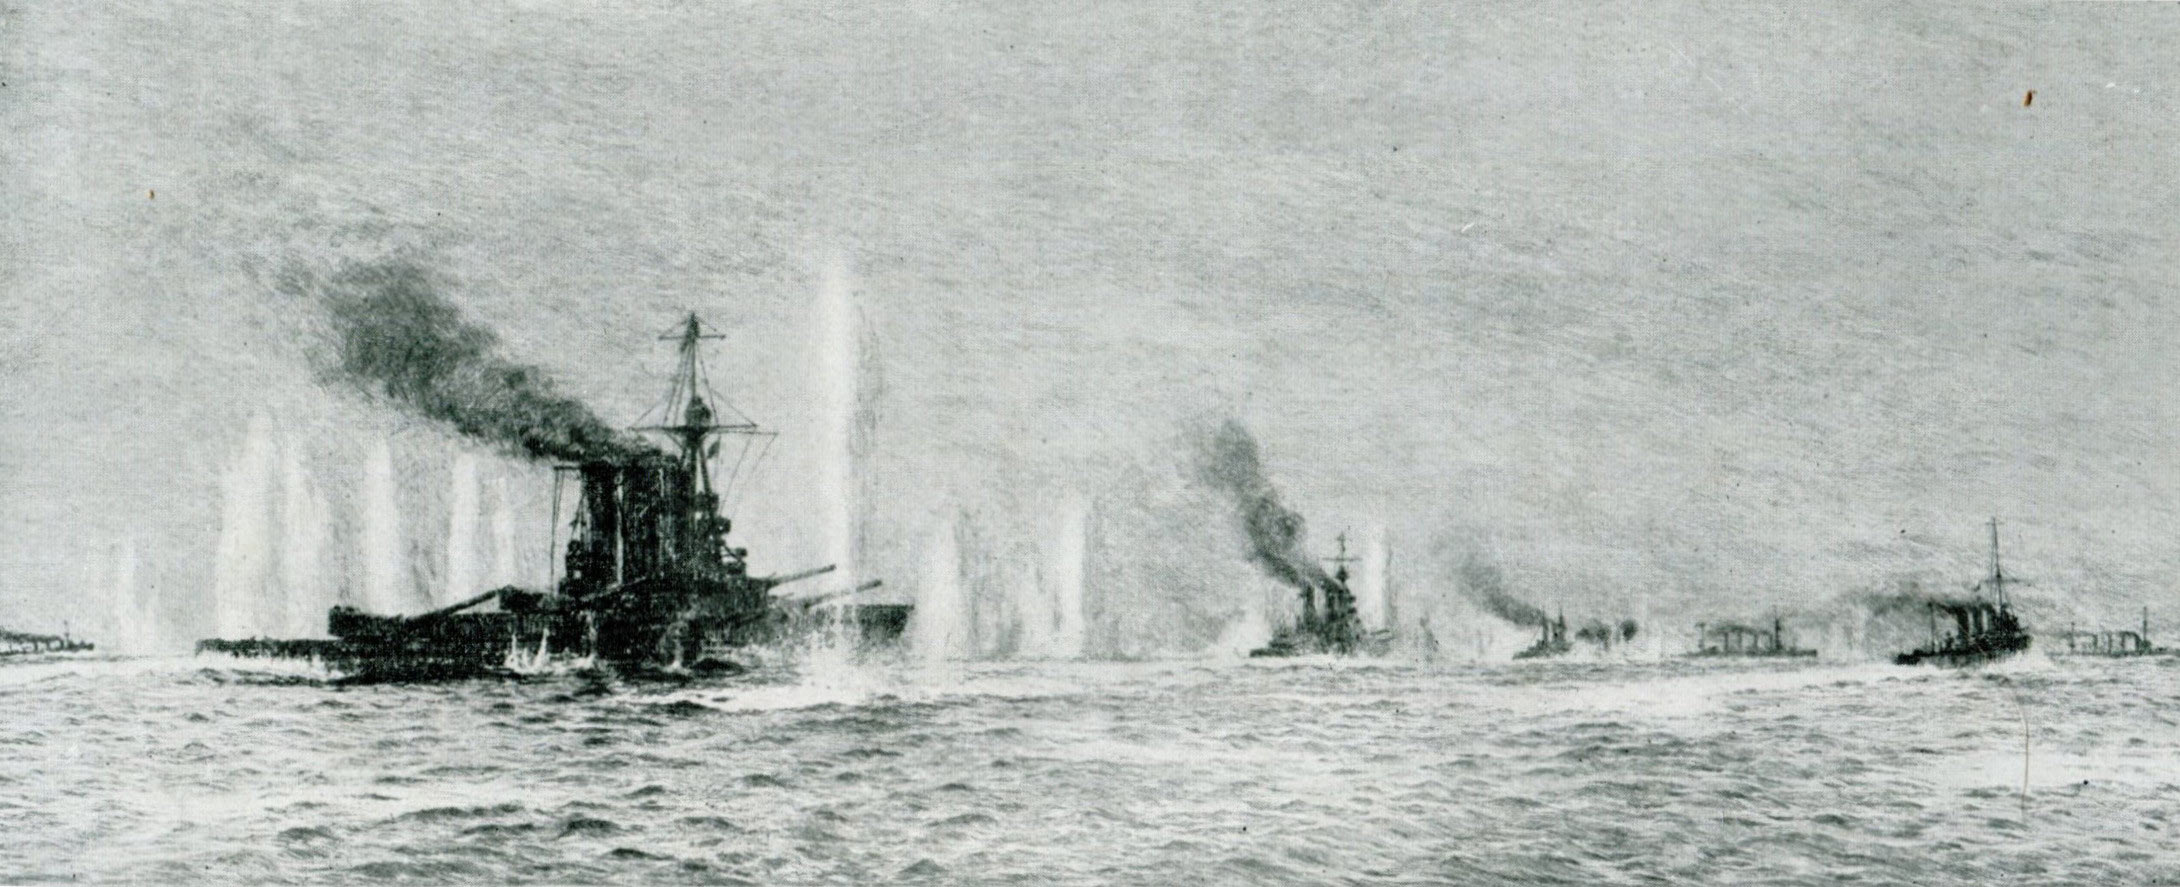 British warships HMS Tiger Princess Royal Lion Warrior and Defence in action at the Battle of Jutland 31st May 1916 shortly before Defence was sunk: picture by Lionel Wyllie